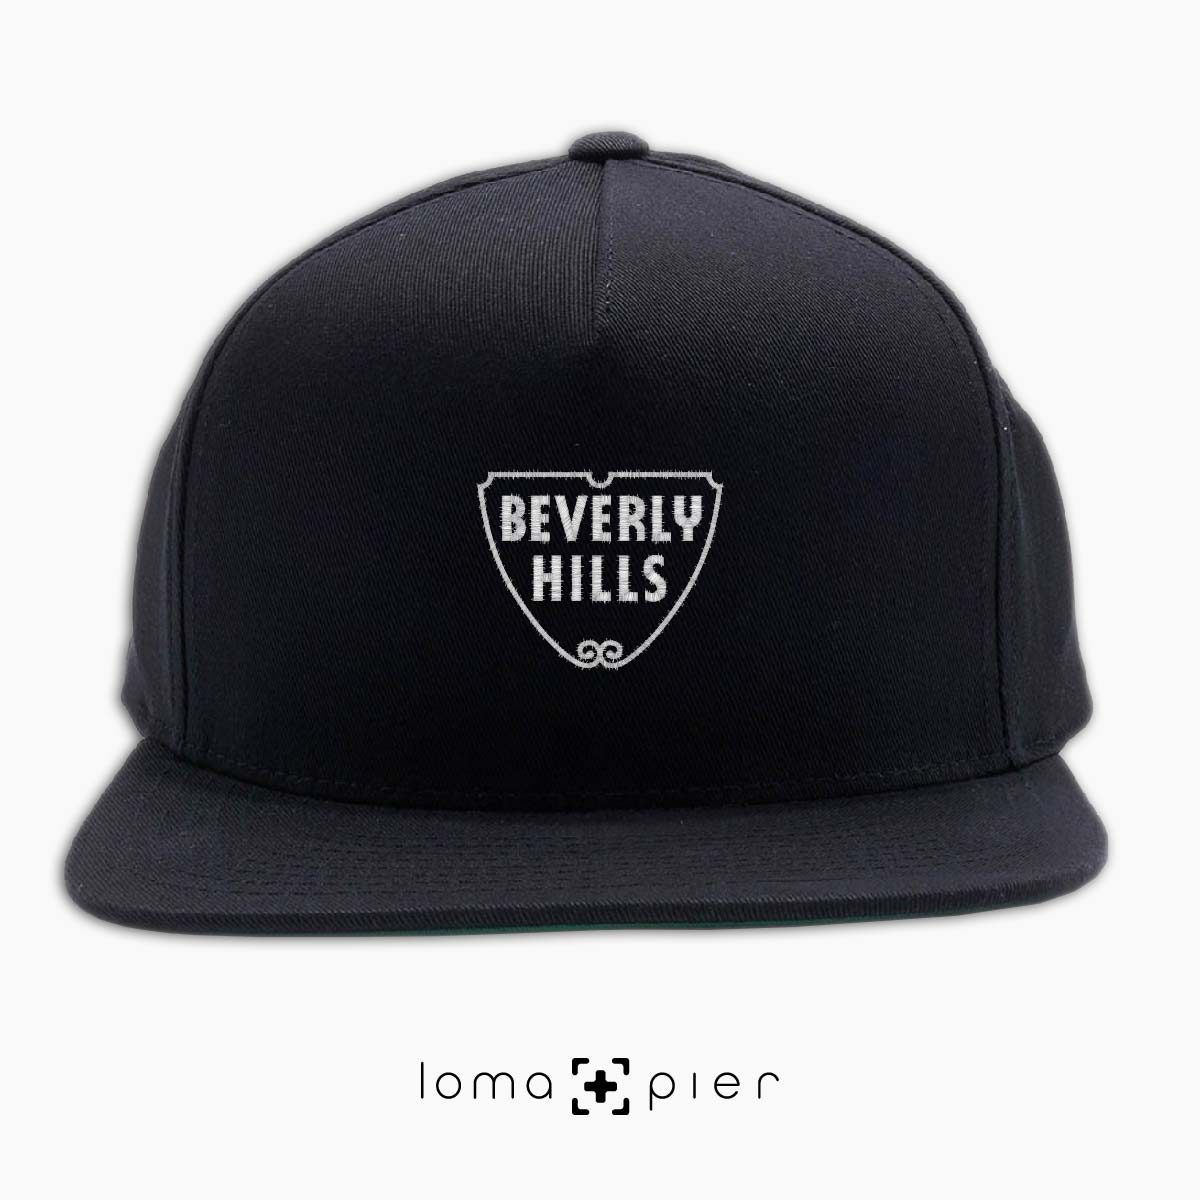 BEVERLY HILLS icon embroidered on a black classic snapback hat with white thread by loma+pier hat store